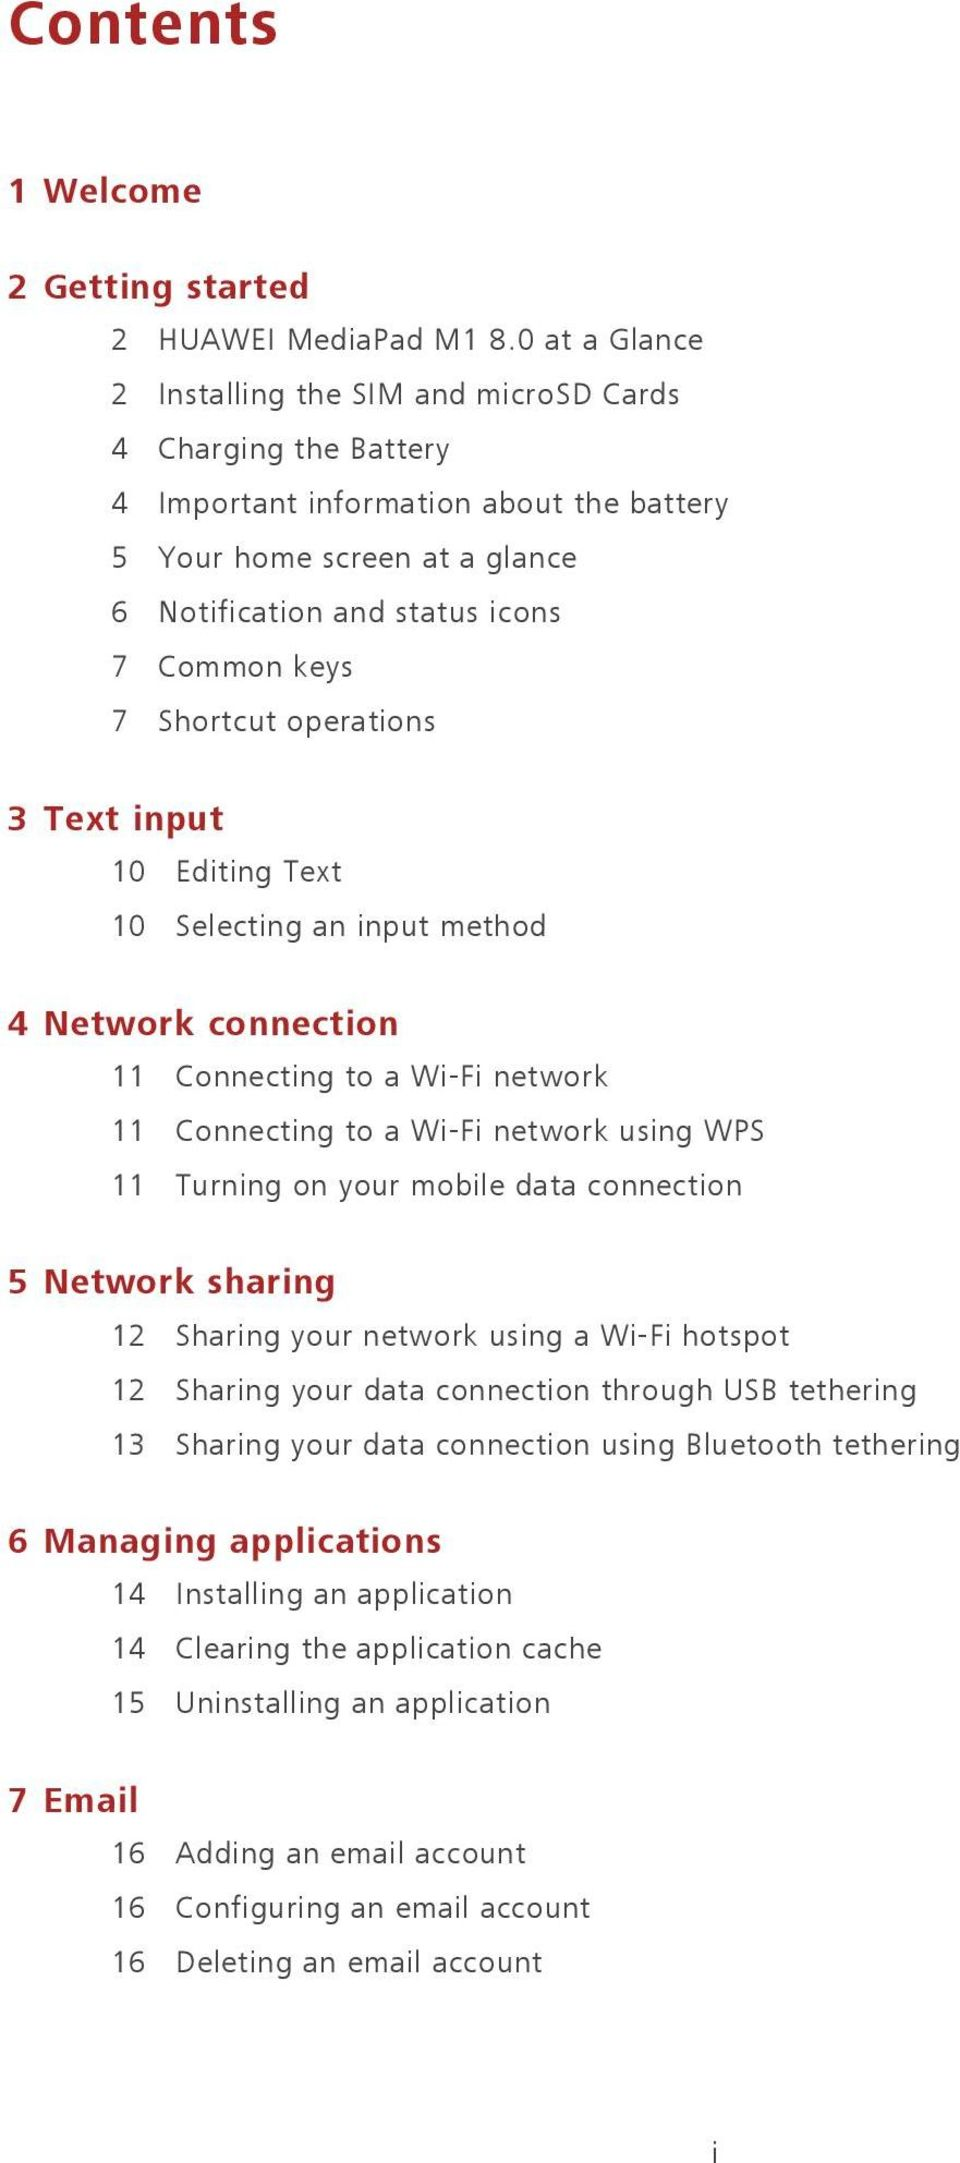 Shortcut operations 3 Text input 10 Editing Text 10 Selecting an input method 4 Network connection 11 Connecting to a Wi-Fi network 11 Connecting to a Wi-Fi network using WPS 11 Turning on your